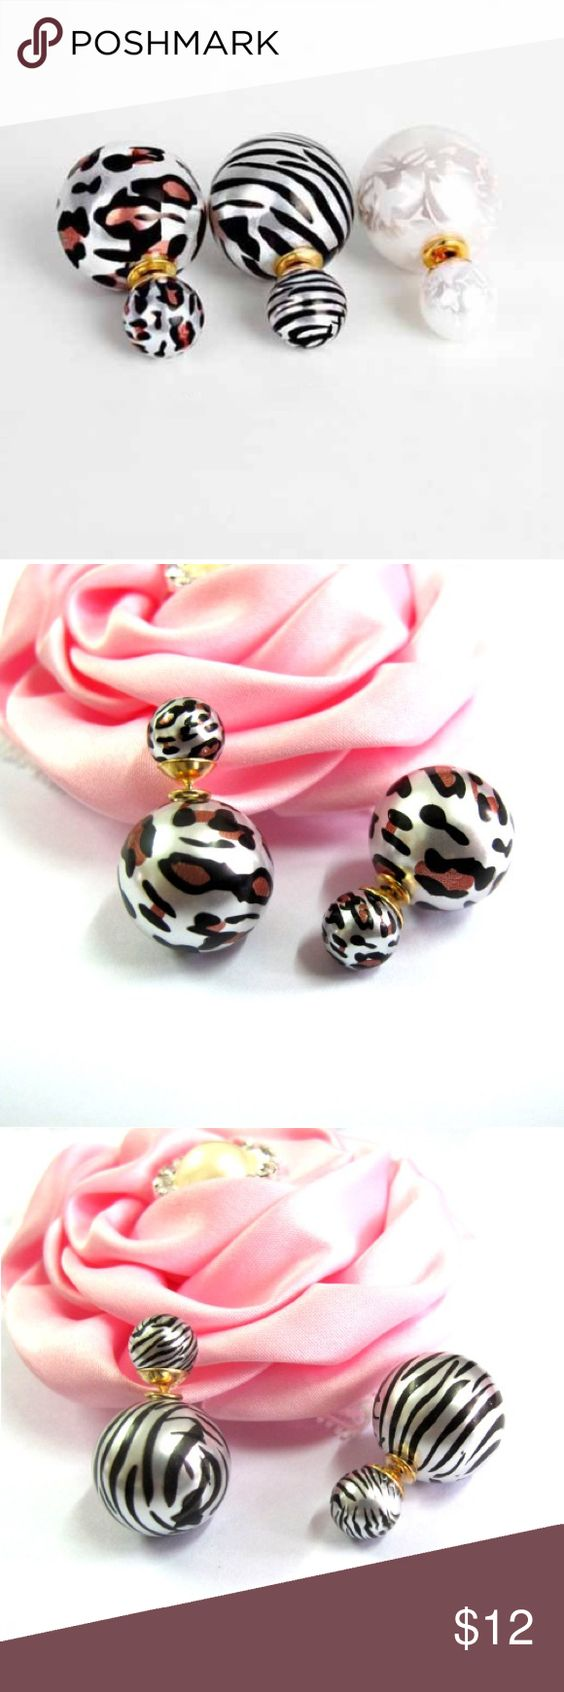 Double Ball Simulated Pearl Stud Earrings These stylish double ball earrings are the perfectly chic accessory to add to your look. Great accessory and a unique gift.                                                            Printed: Leopard, Zebra Stripe, Printing.                       Add to Cart  Ushoptwo Jewelry Earrings